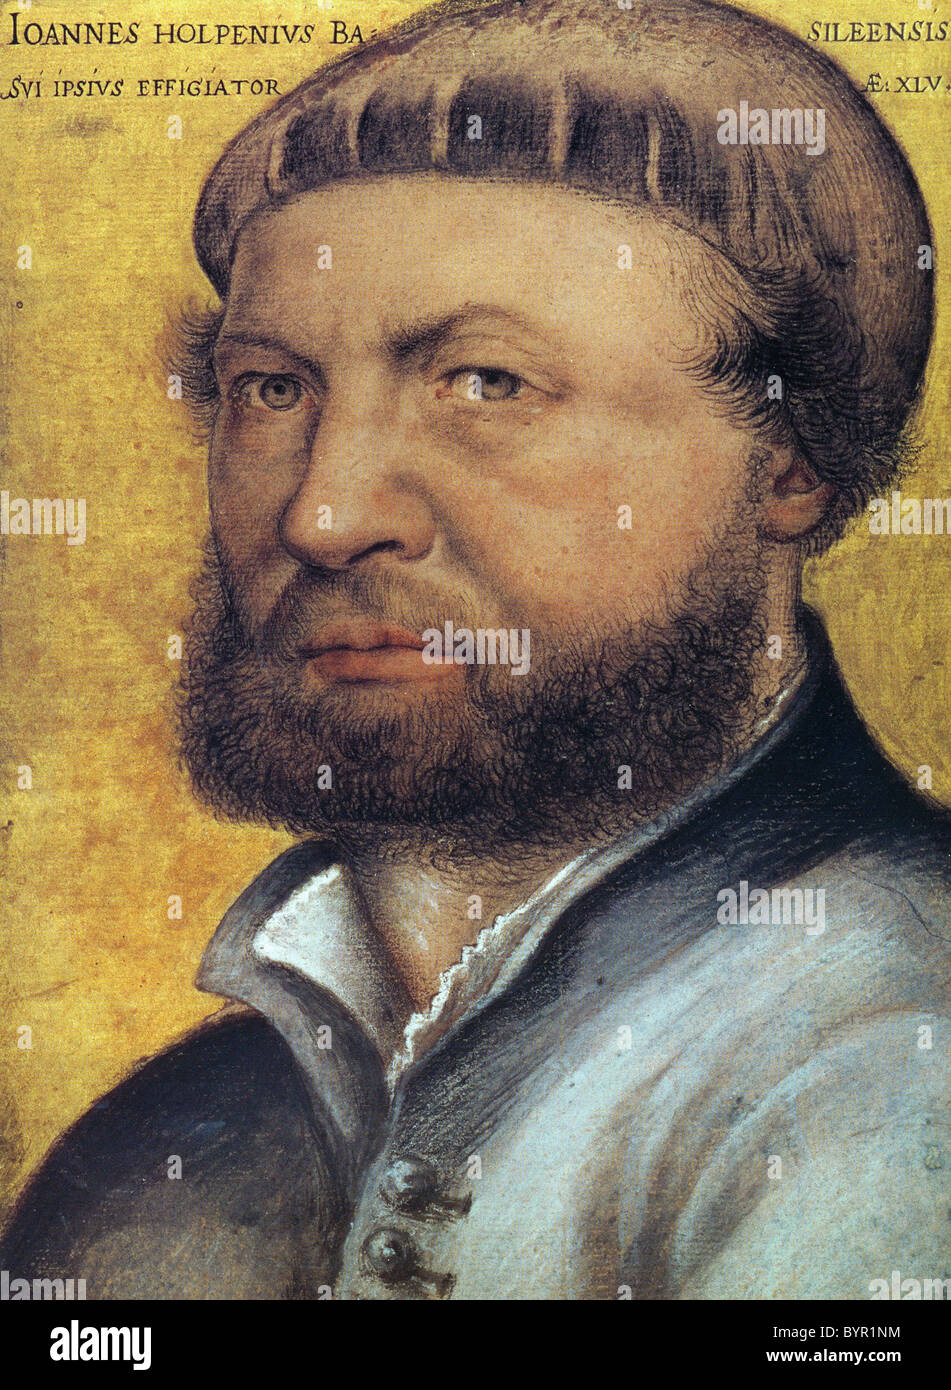 HANS HOLBEIN THE YOUNGER (c 1497-1543) German artist/ printmaker in a self-portrait in the Uffizi Gallery, Florence Stock Photo